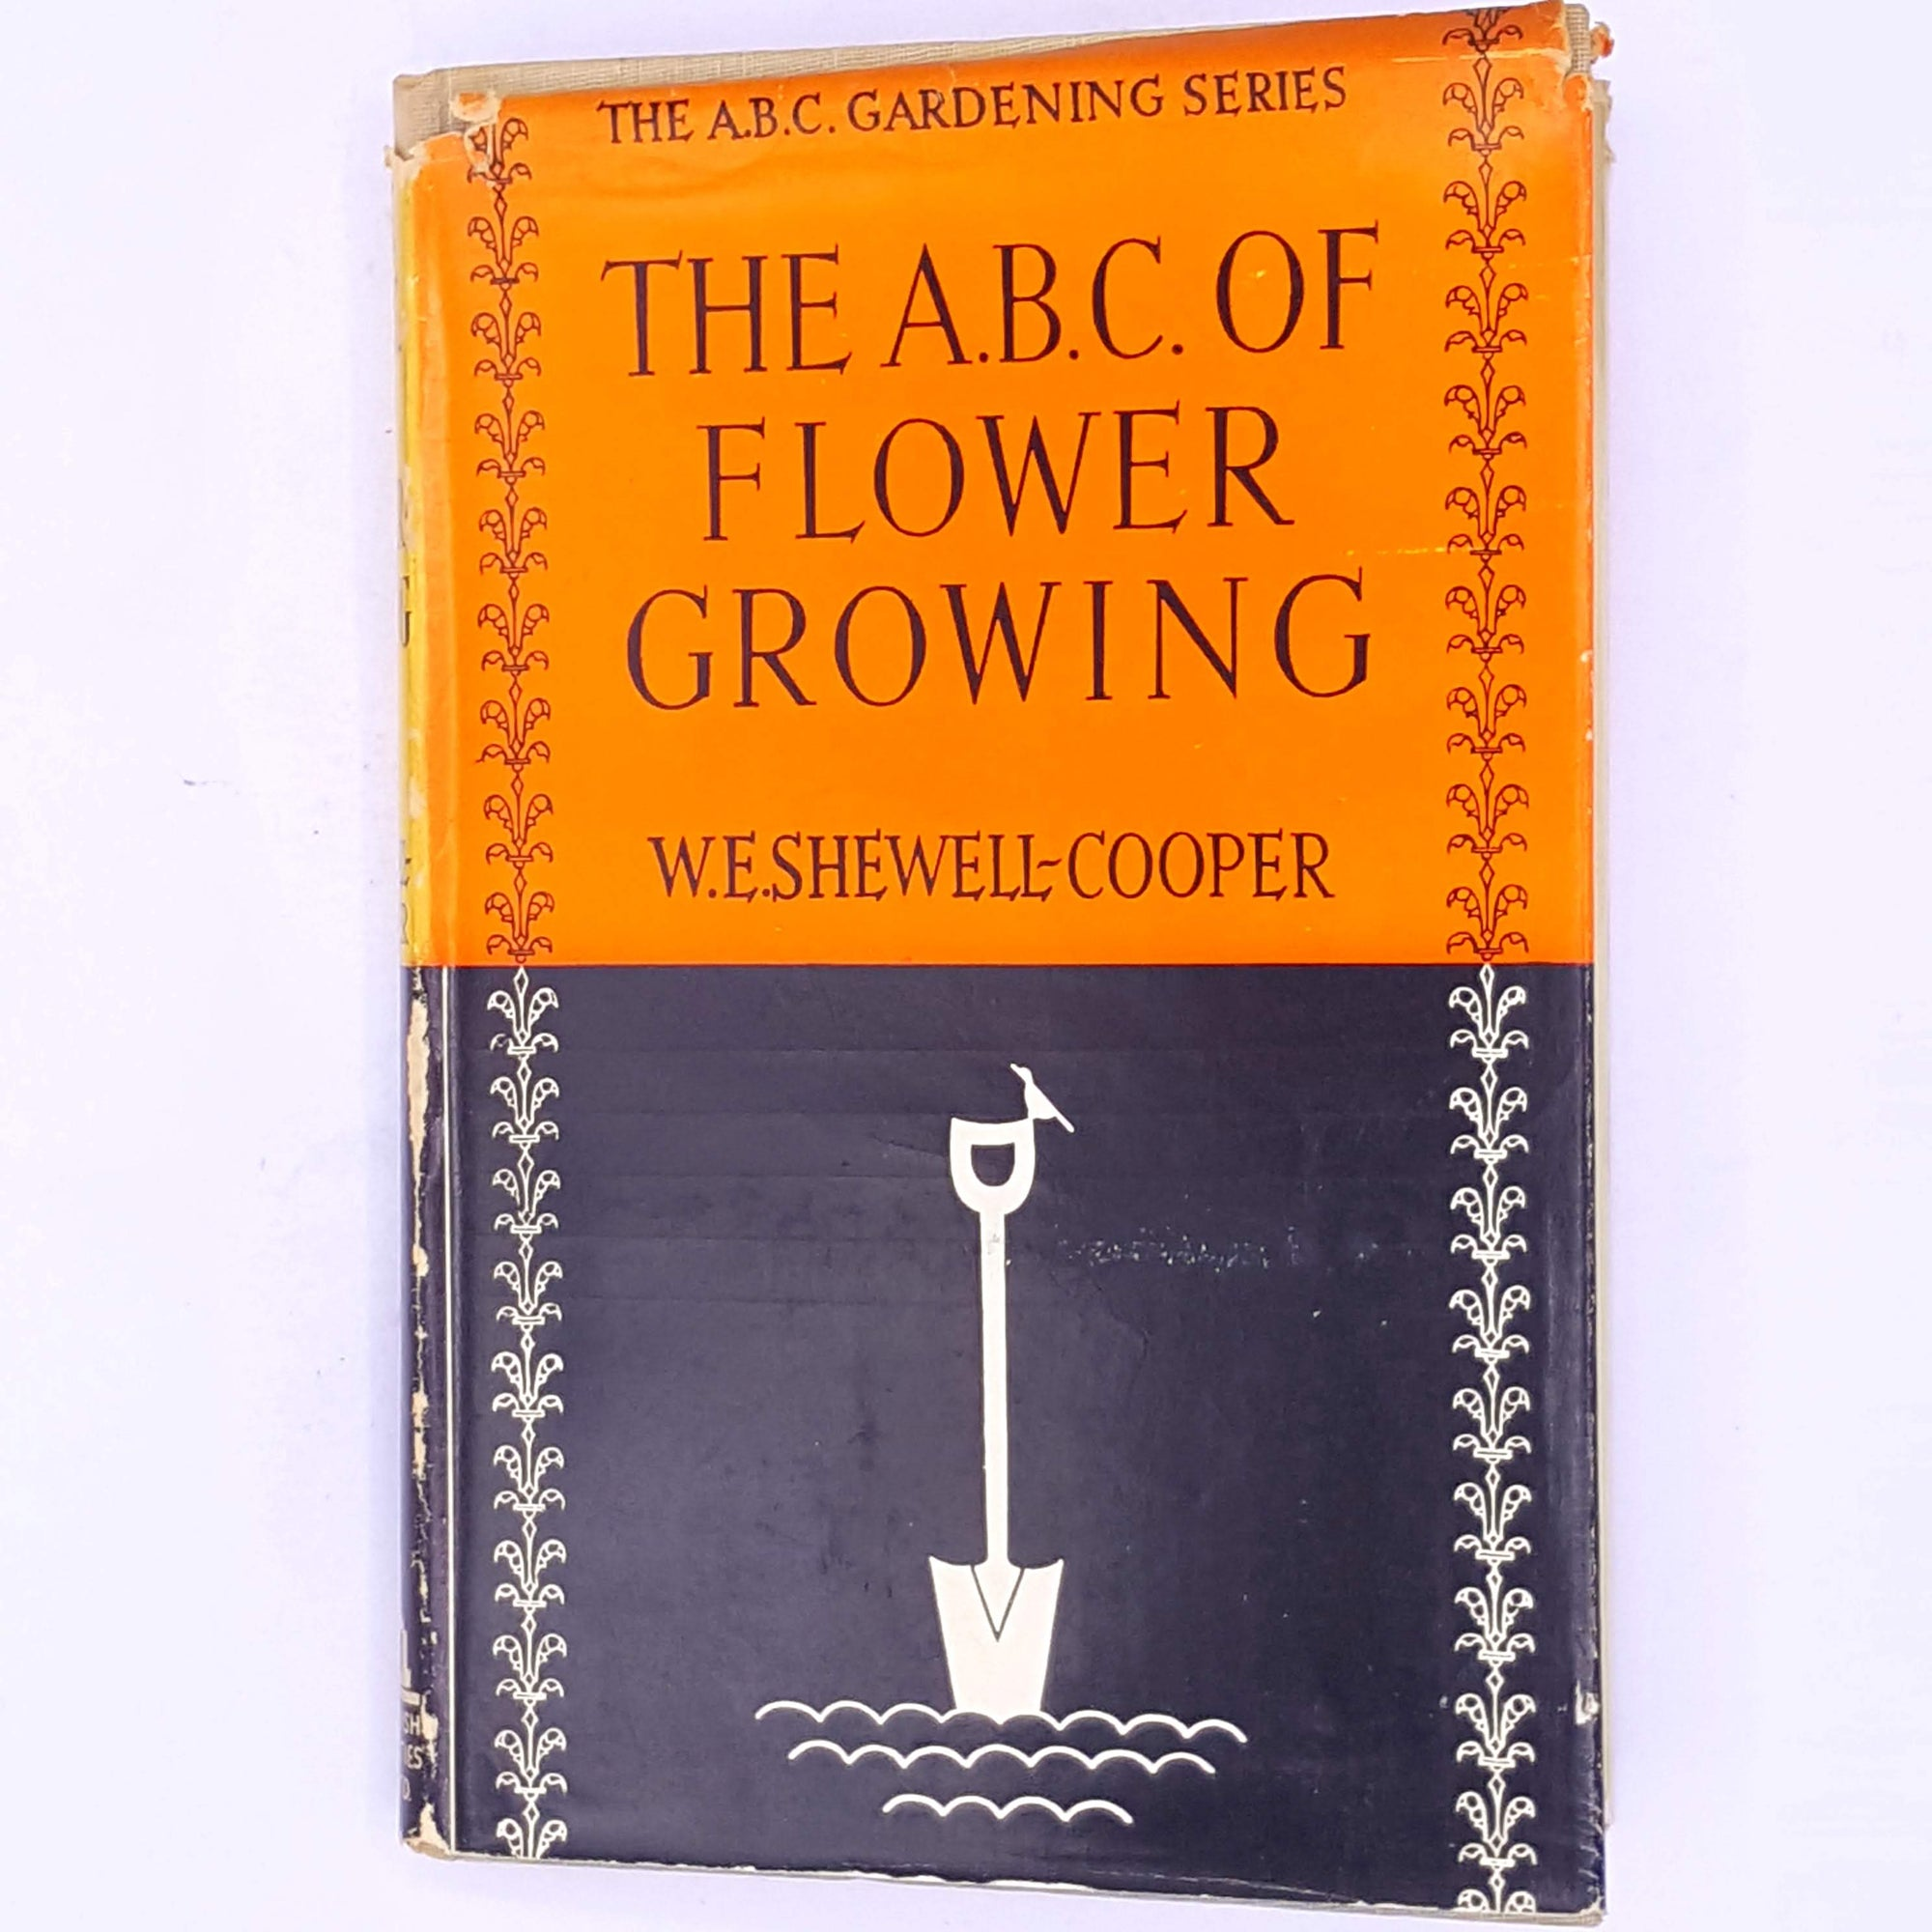 garden-patterned-classic-Gardening-old-thrift-cacti-antique-decorative-The-A.B.C.-Flower-Growing-W.E.Shewell-Cooper-country-house-library-vintage-books-